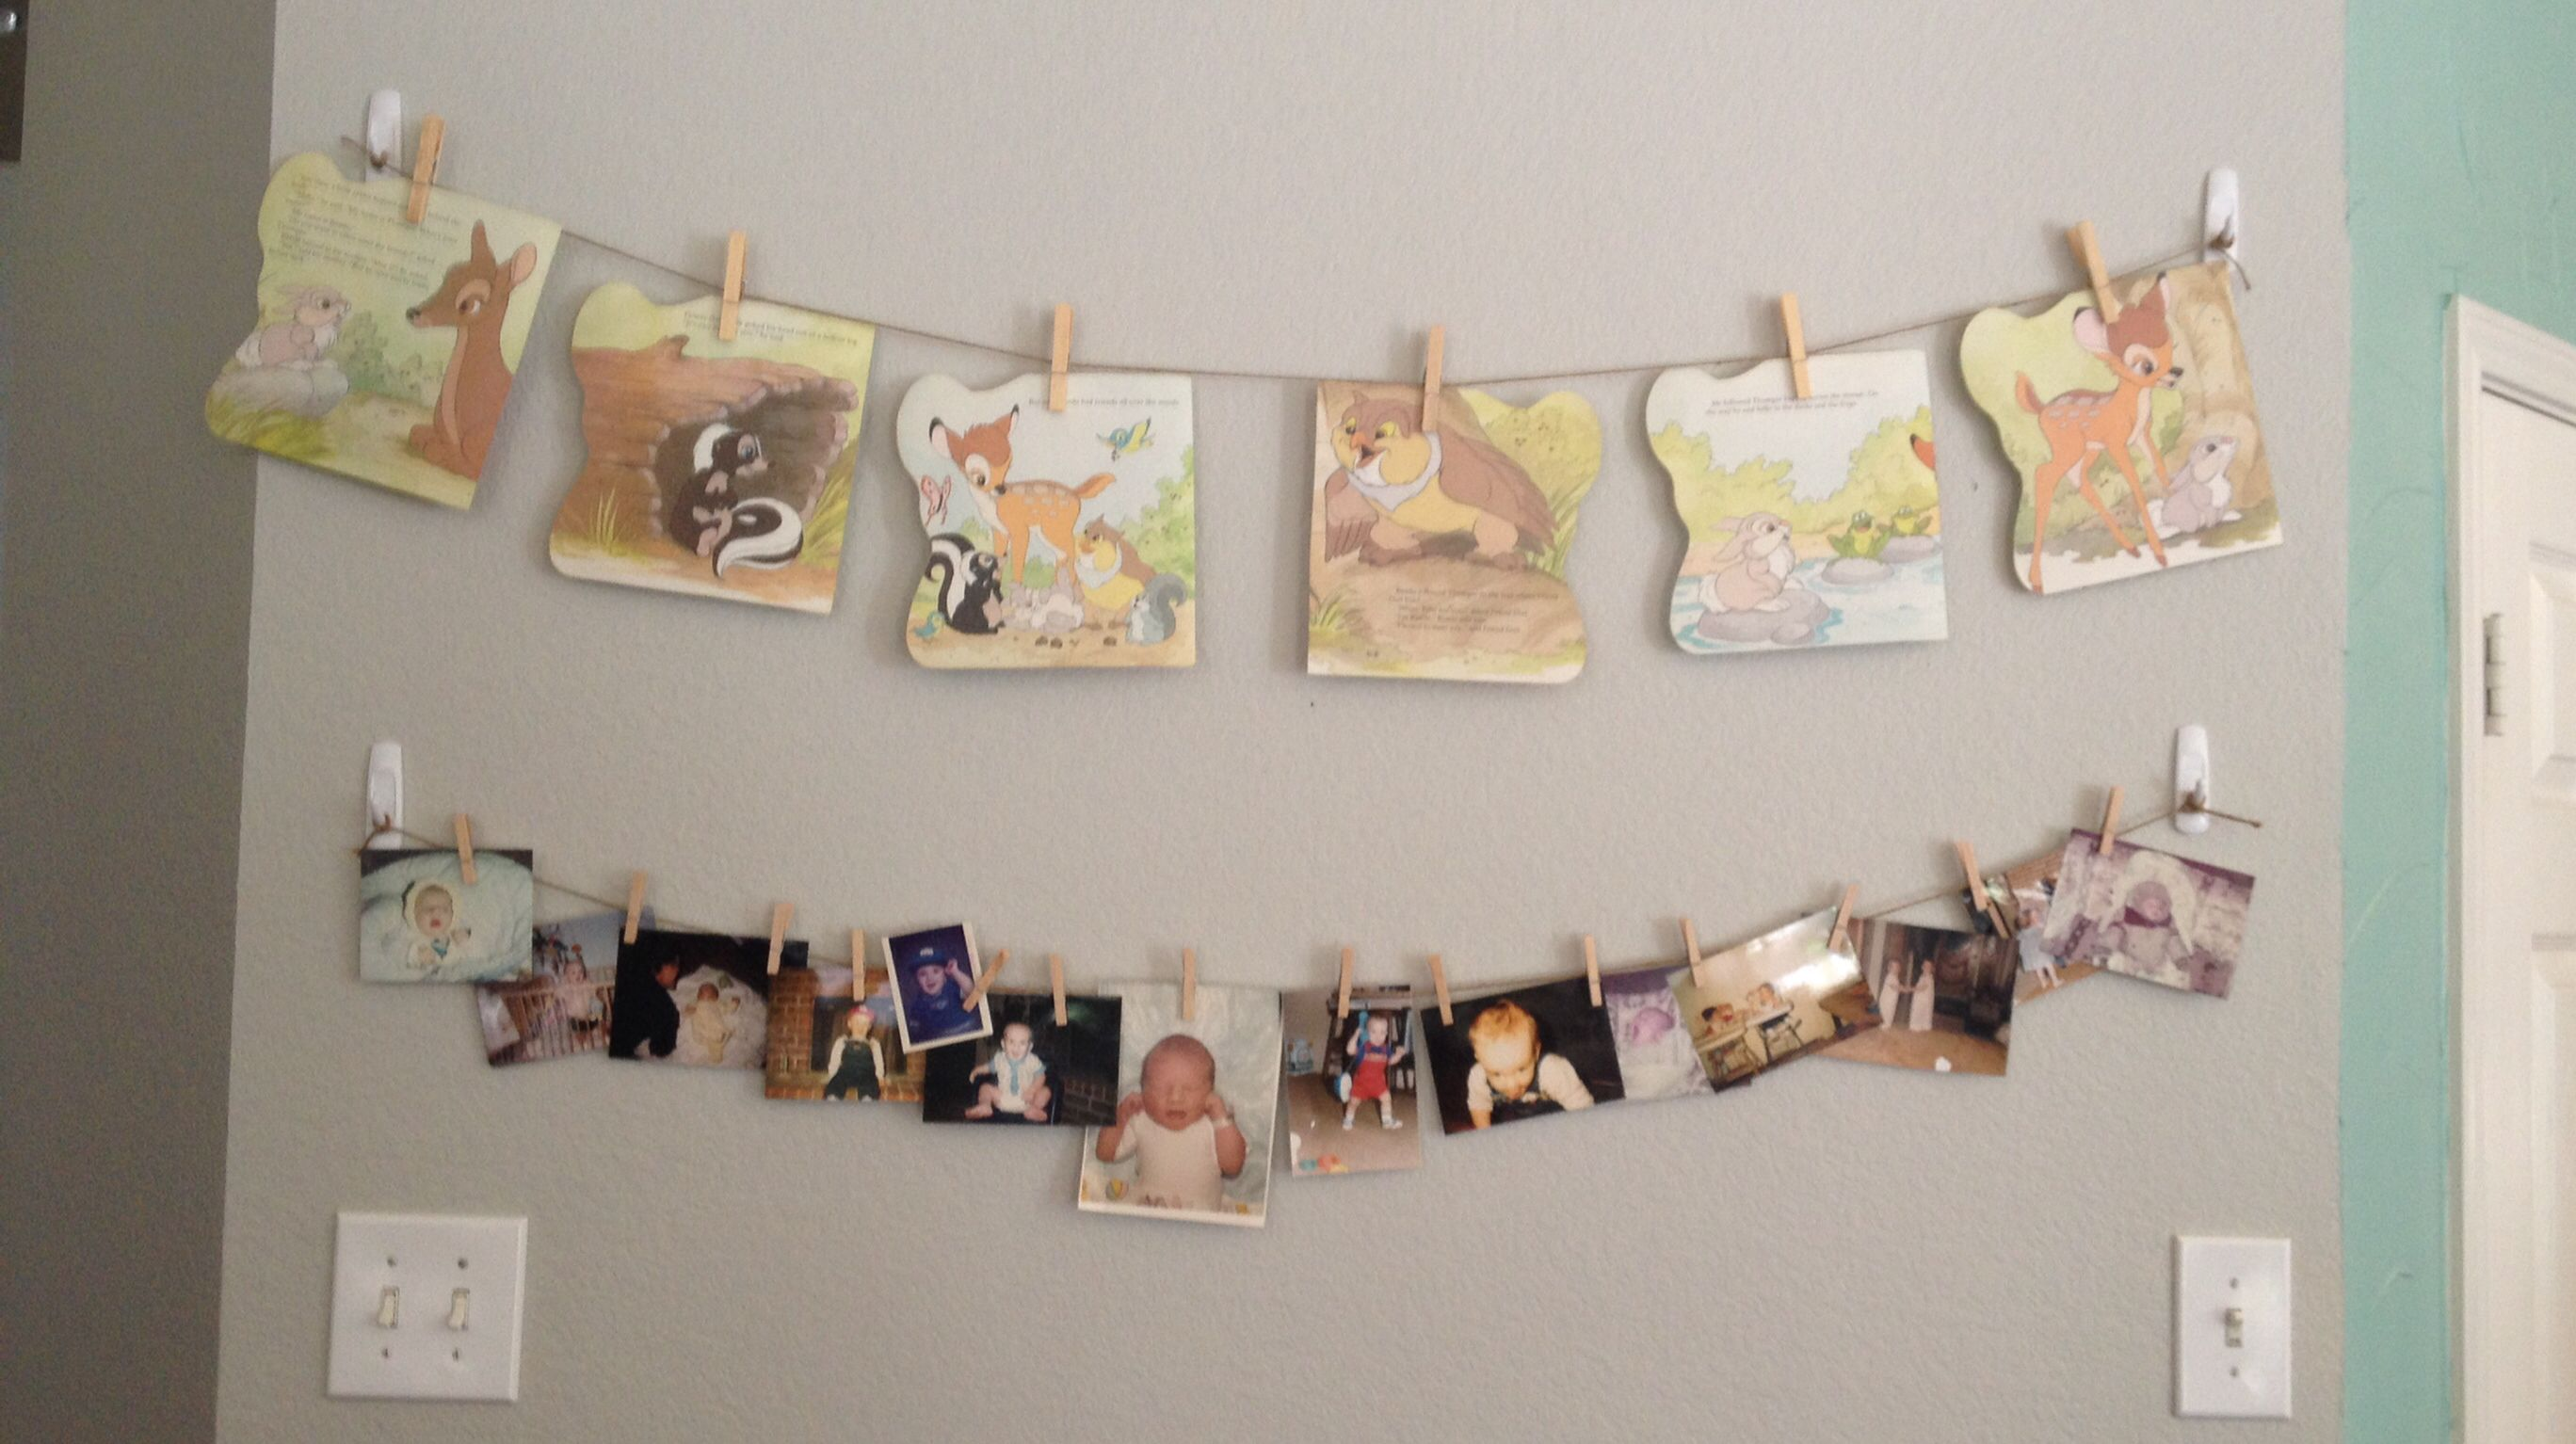 Bambi storybook pages and baby photos hung on twine with mini clothespins